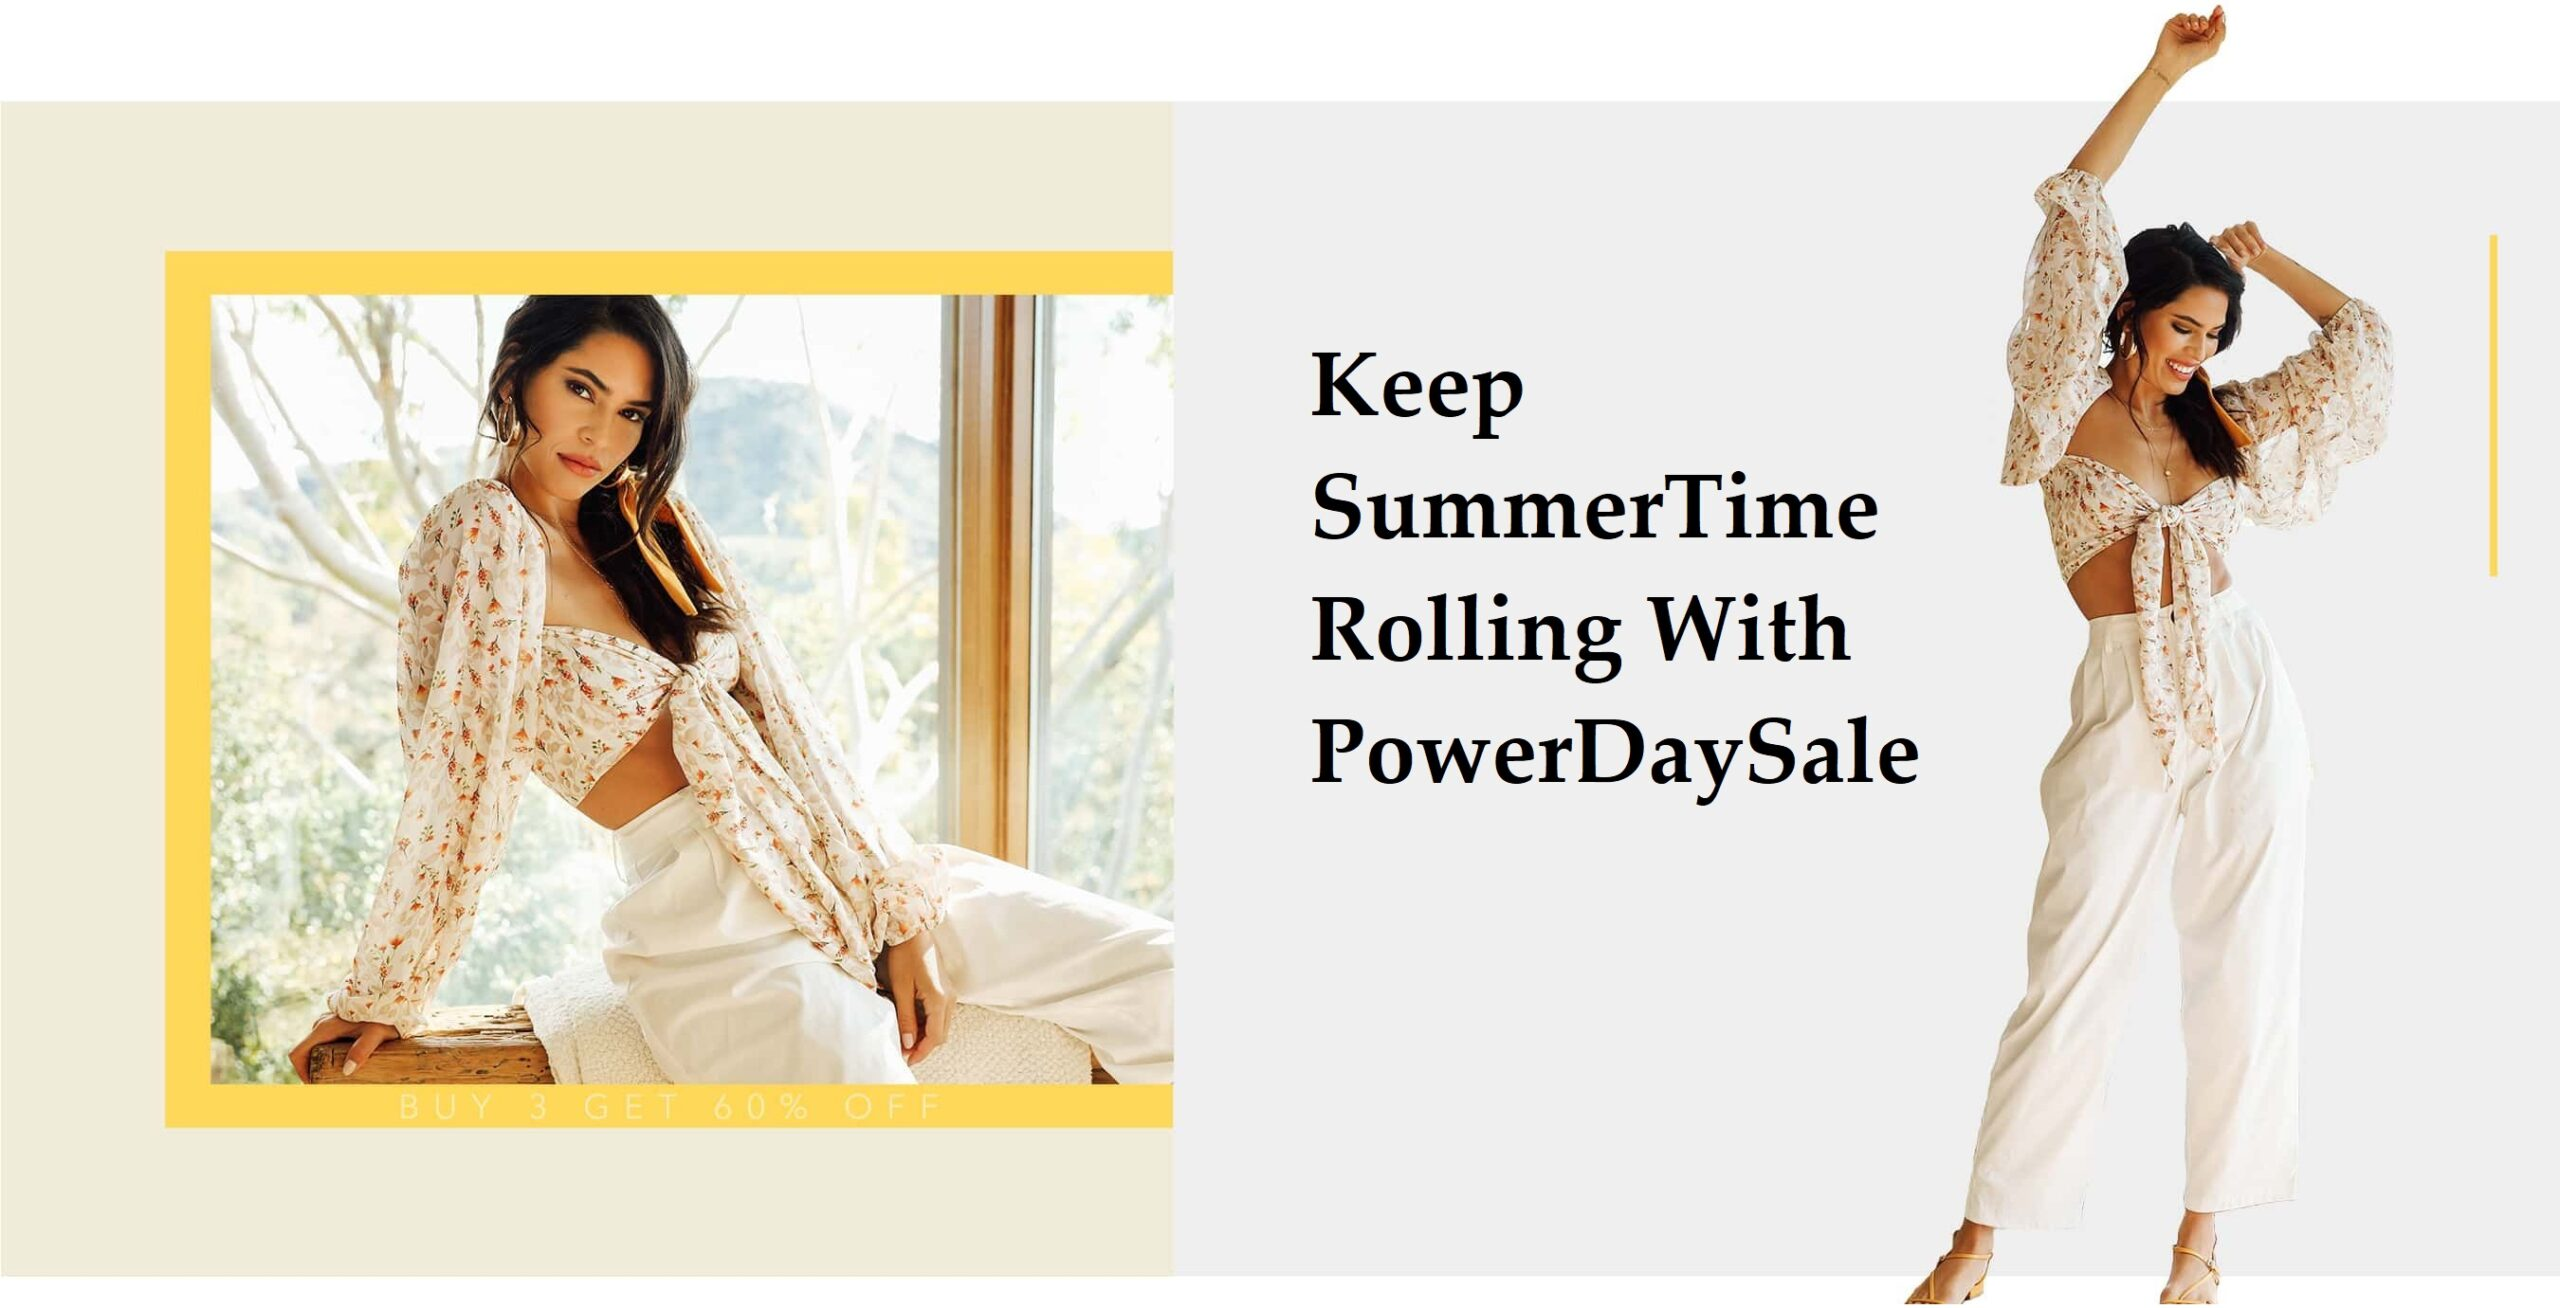 Keep summertime rolling With PowerDaySale